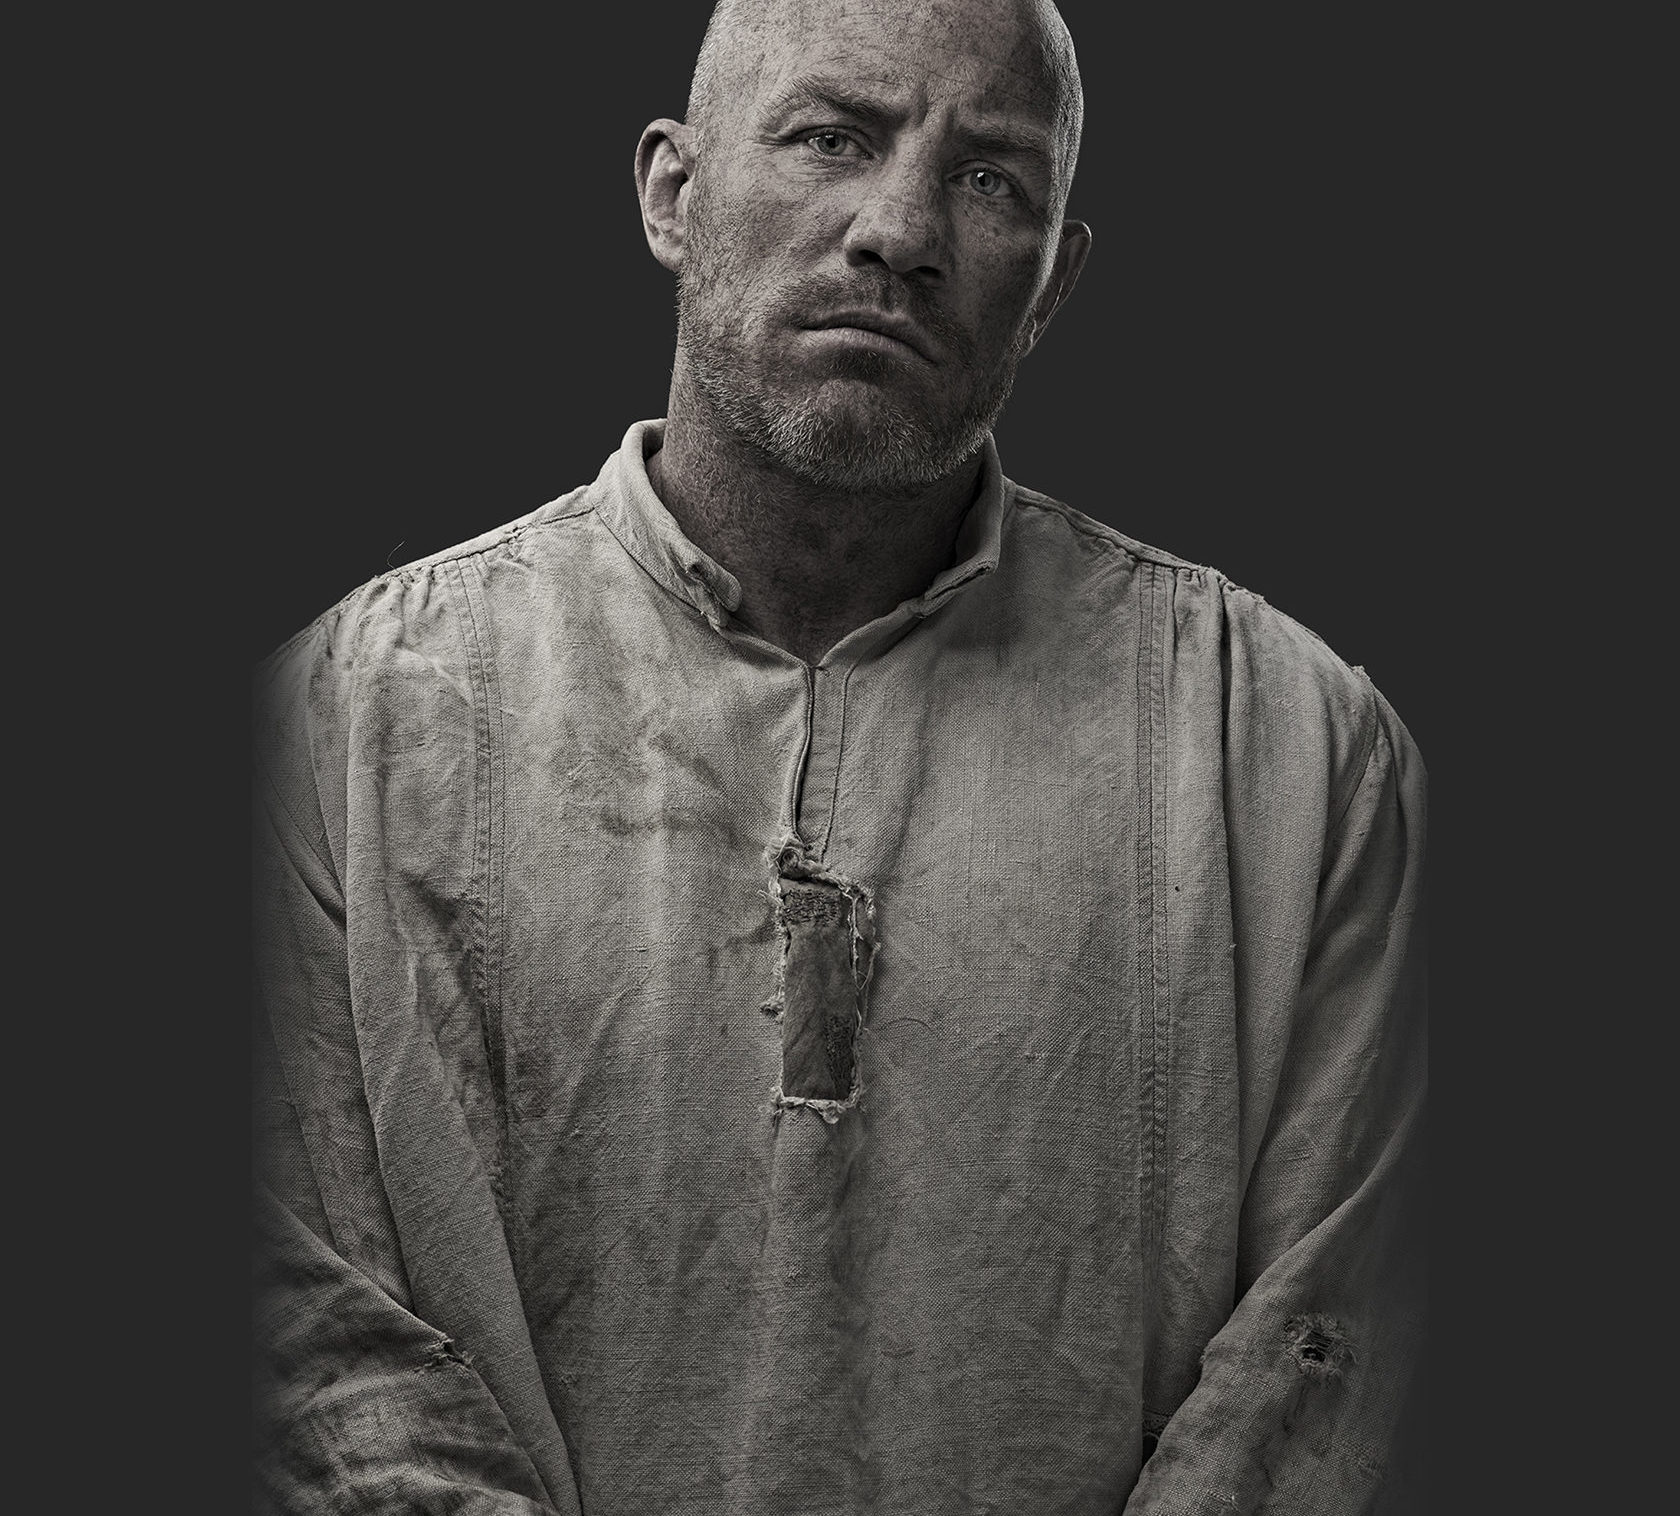 Bald man dressed as convict with black background.